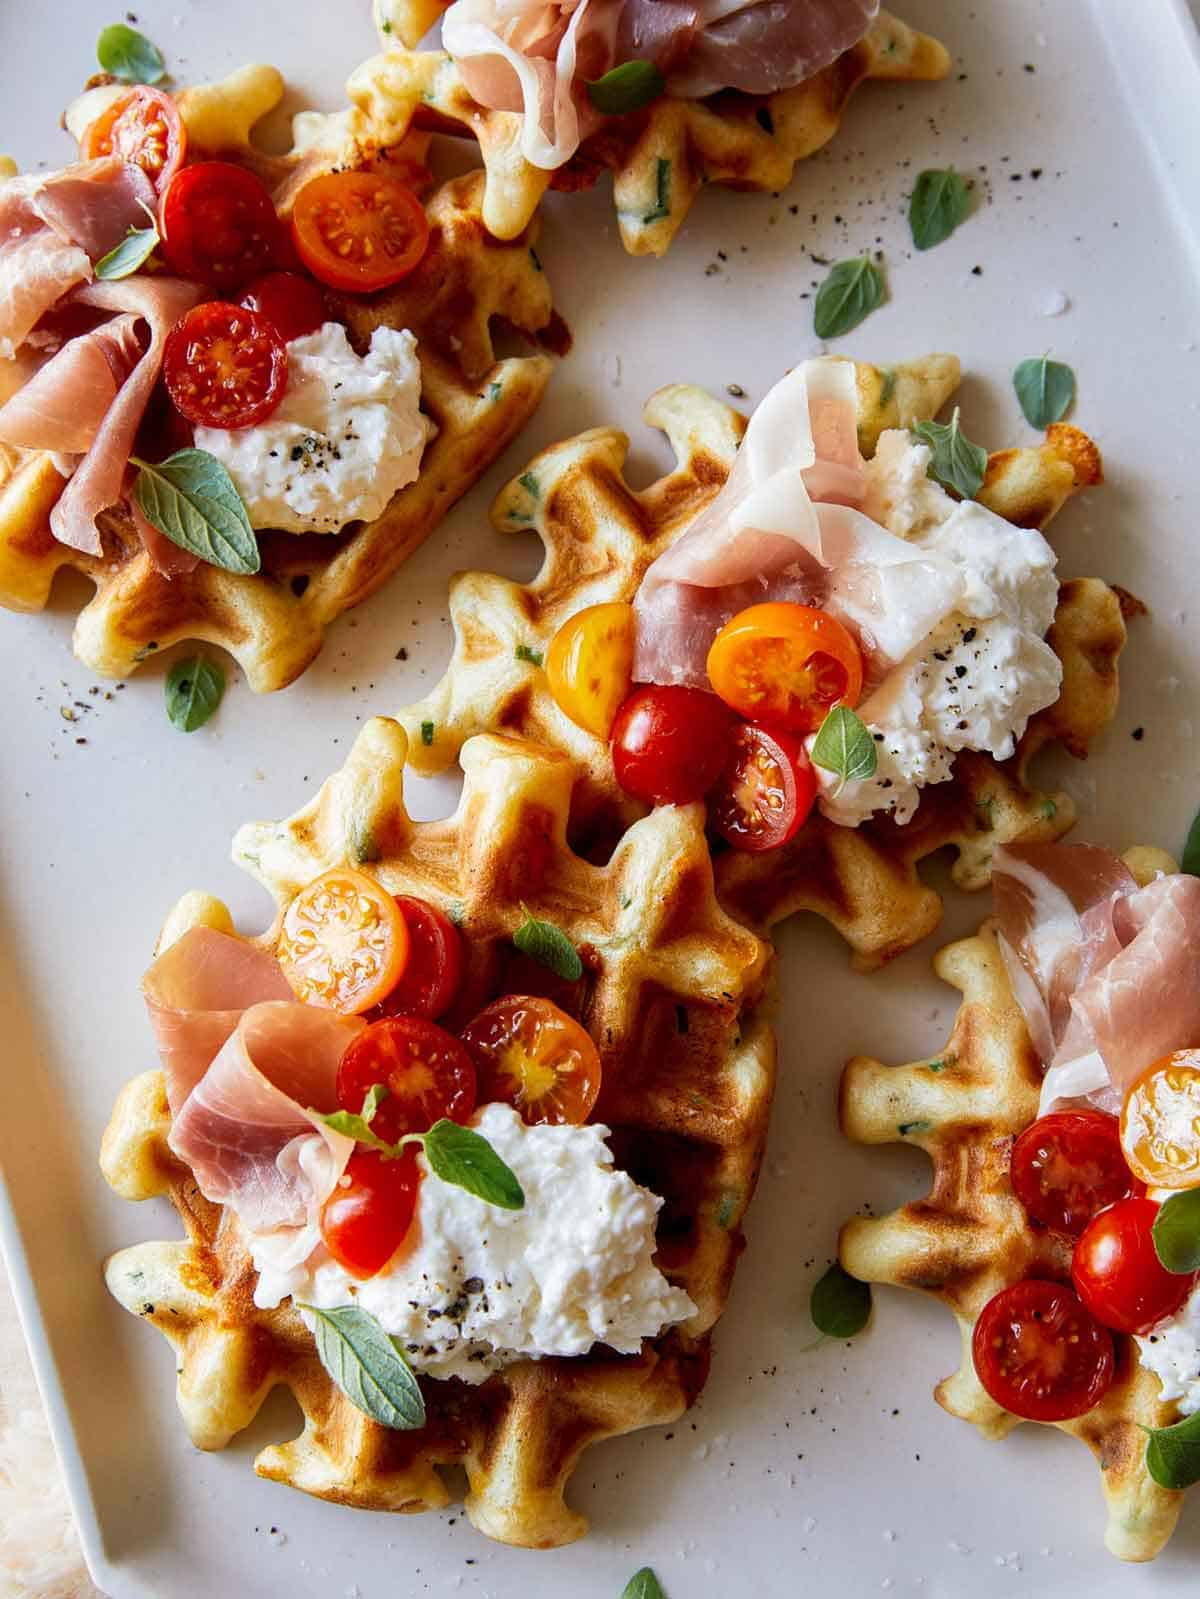 Cheesy herb waffles topped with prosciutto, burrata and tomatoes.